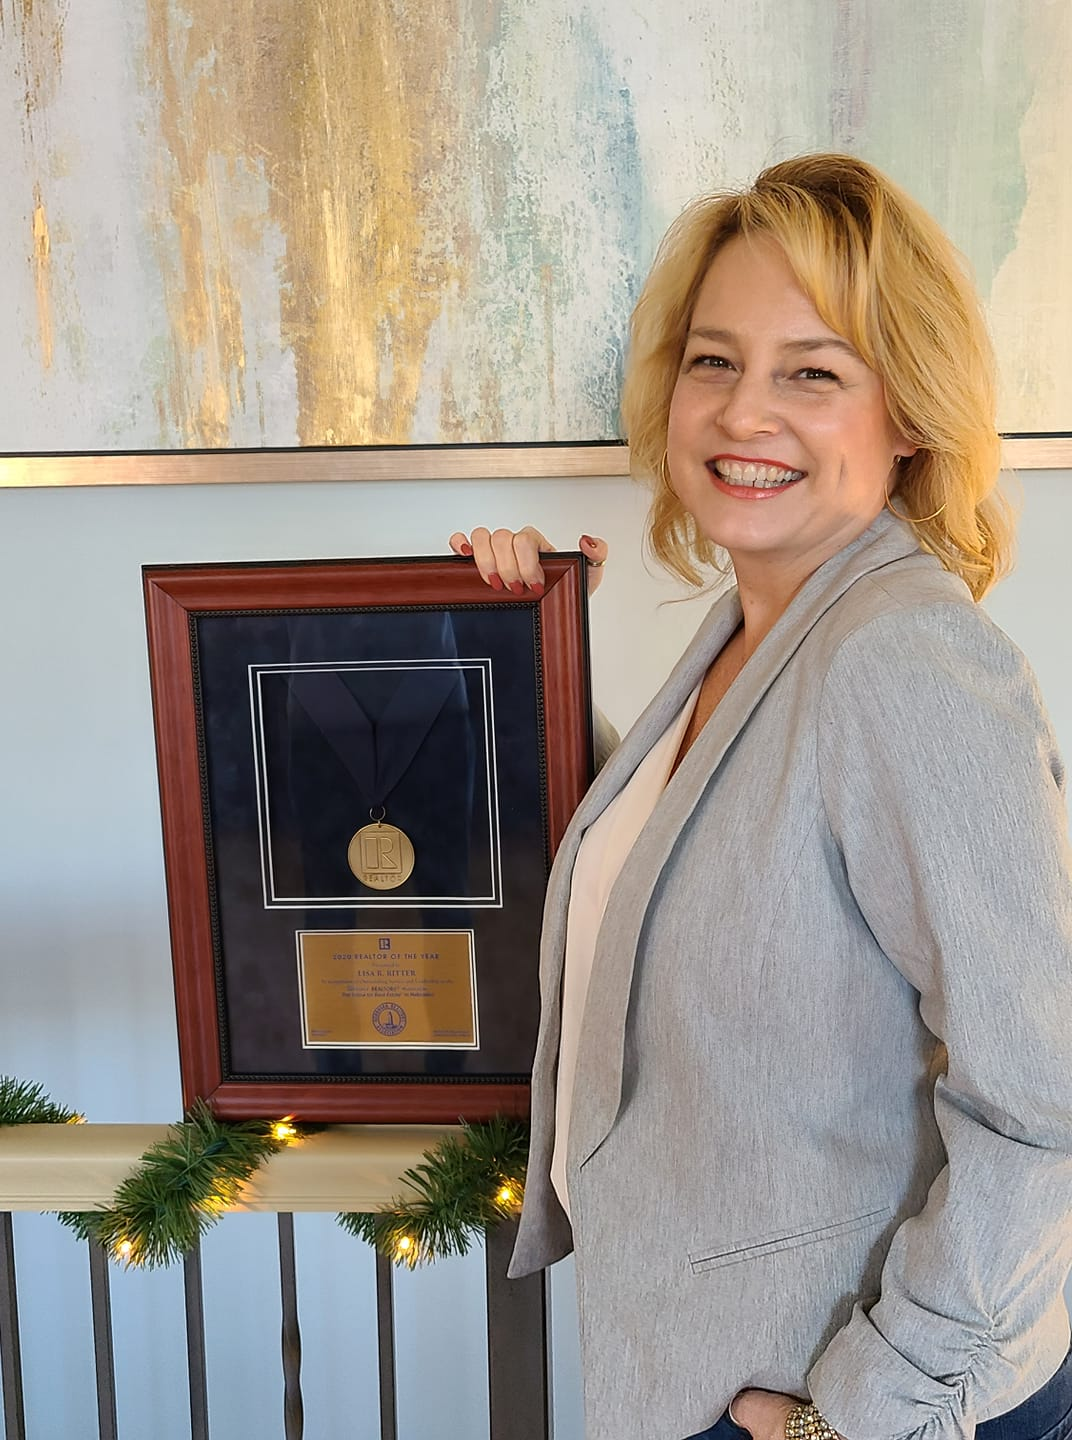 Lisa with plaque